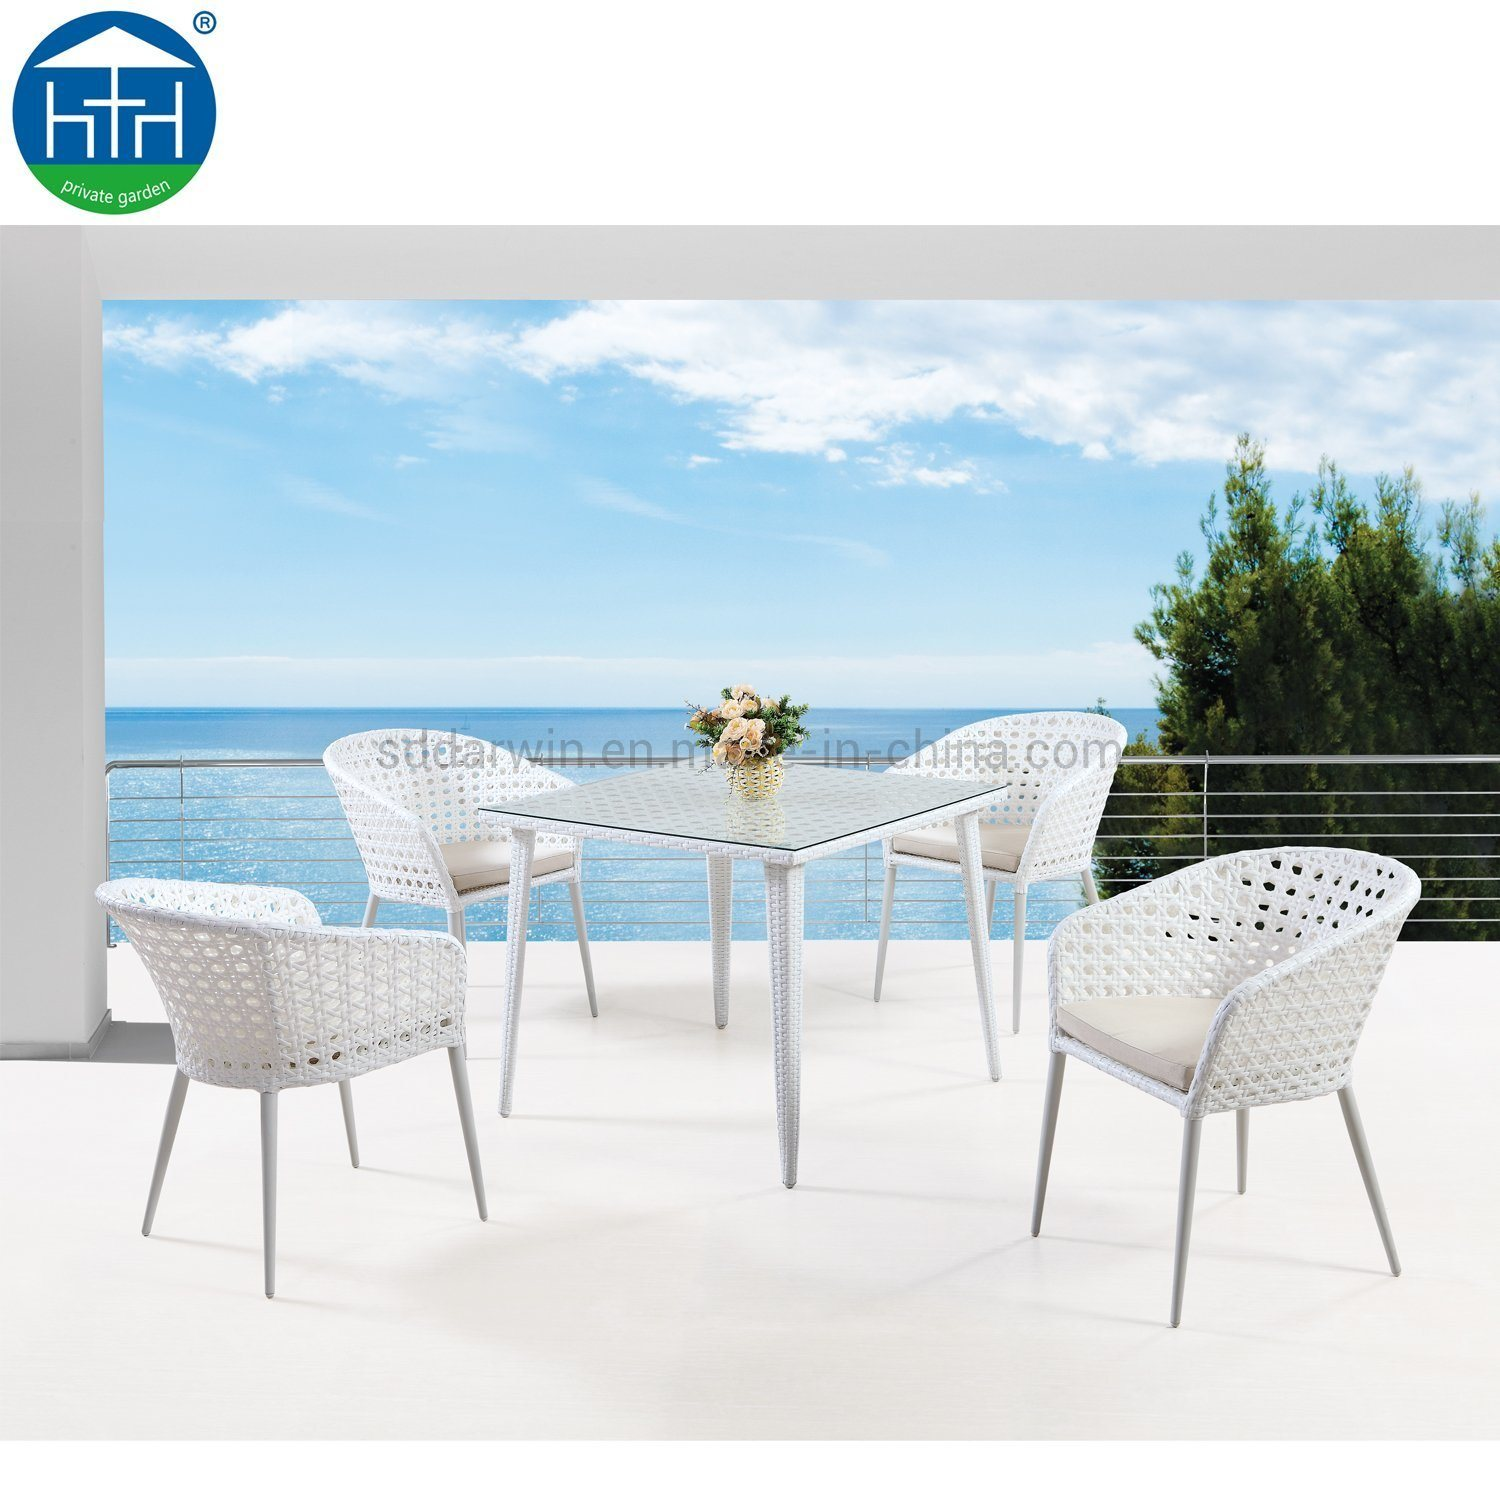 China Durable Garden Rattan Table And Chair Wicker Patio Furniture For  Garden   China Patio Garden Furniture, Outdoor Patio Furniture